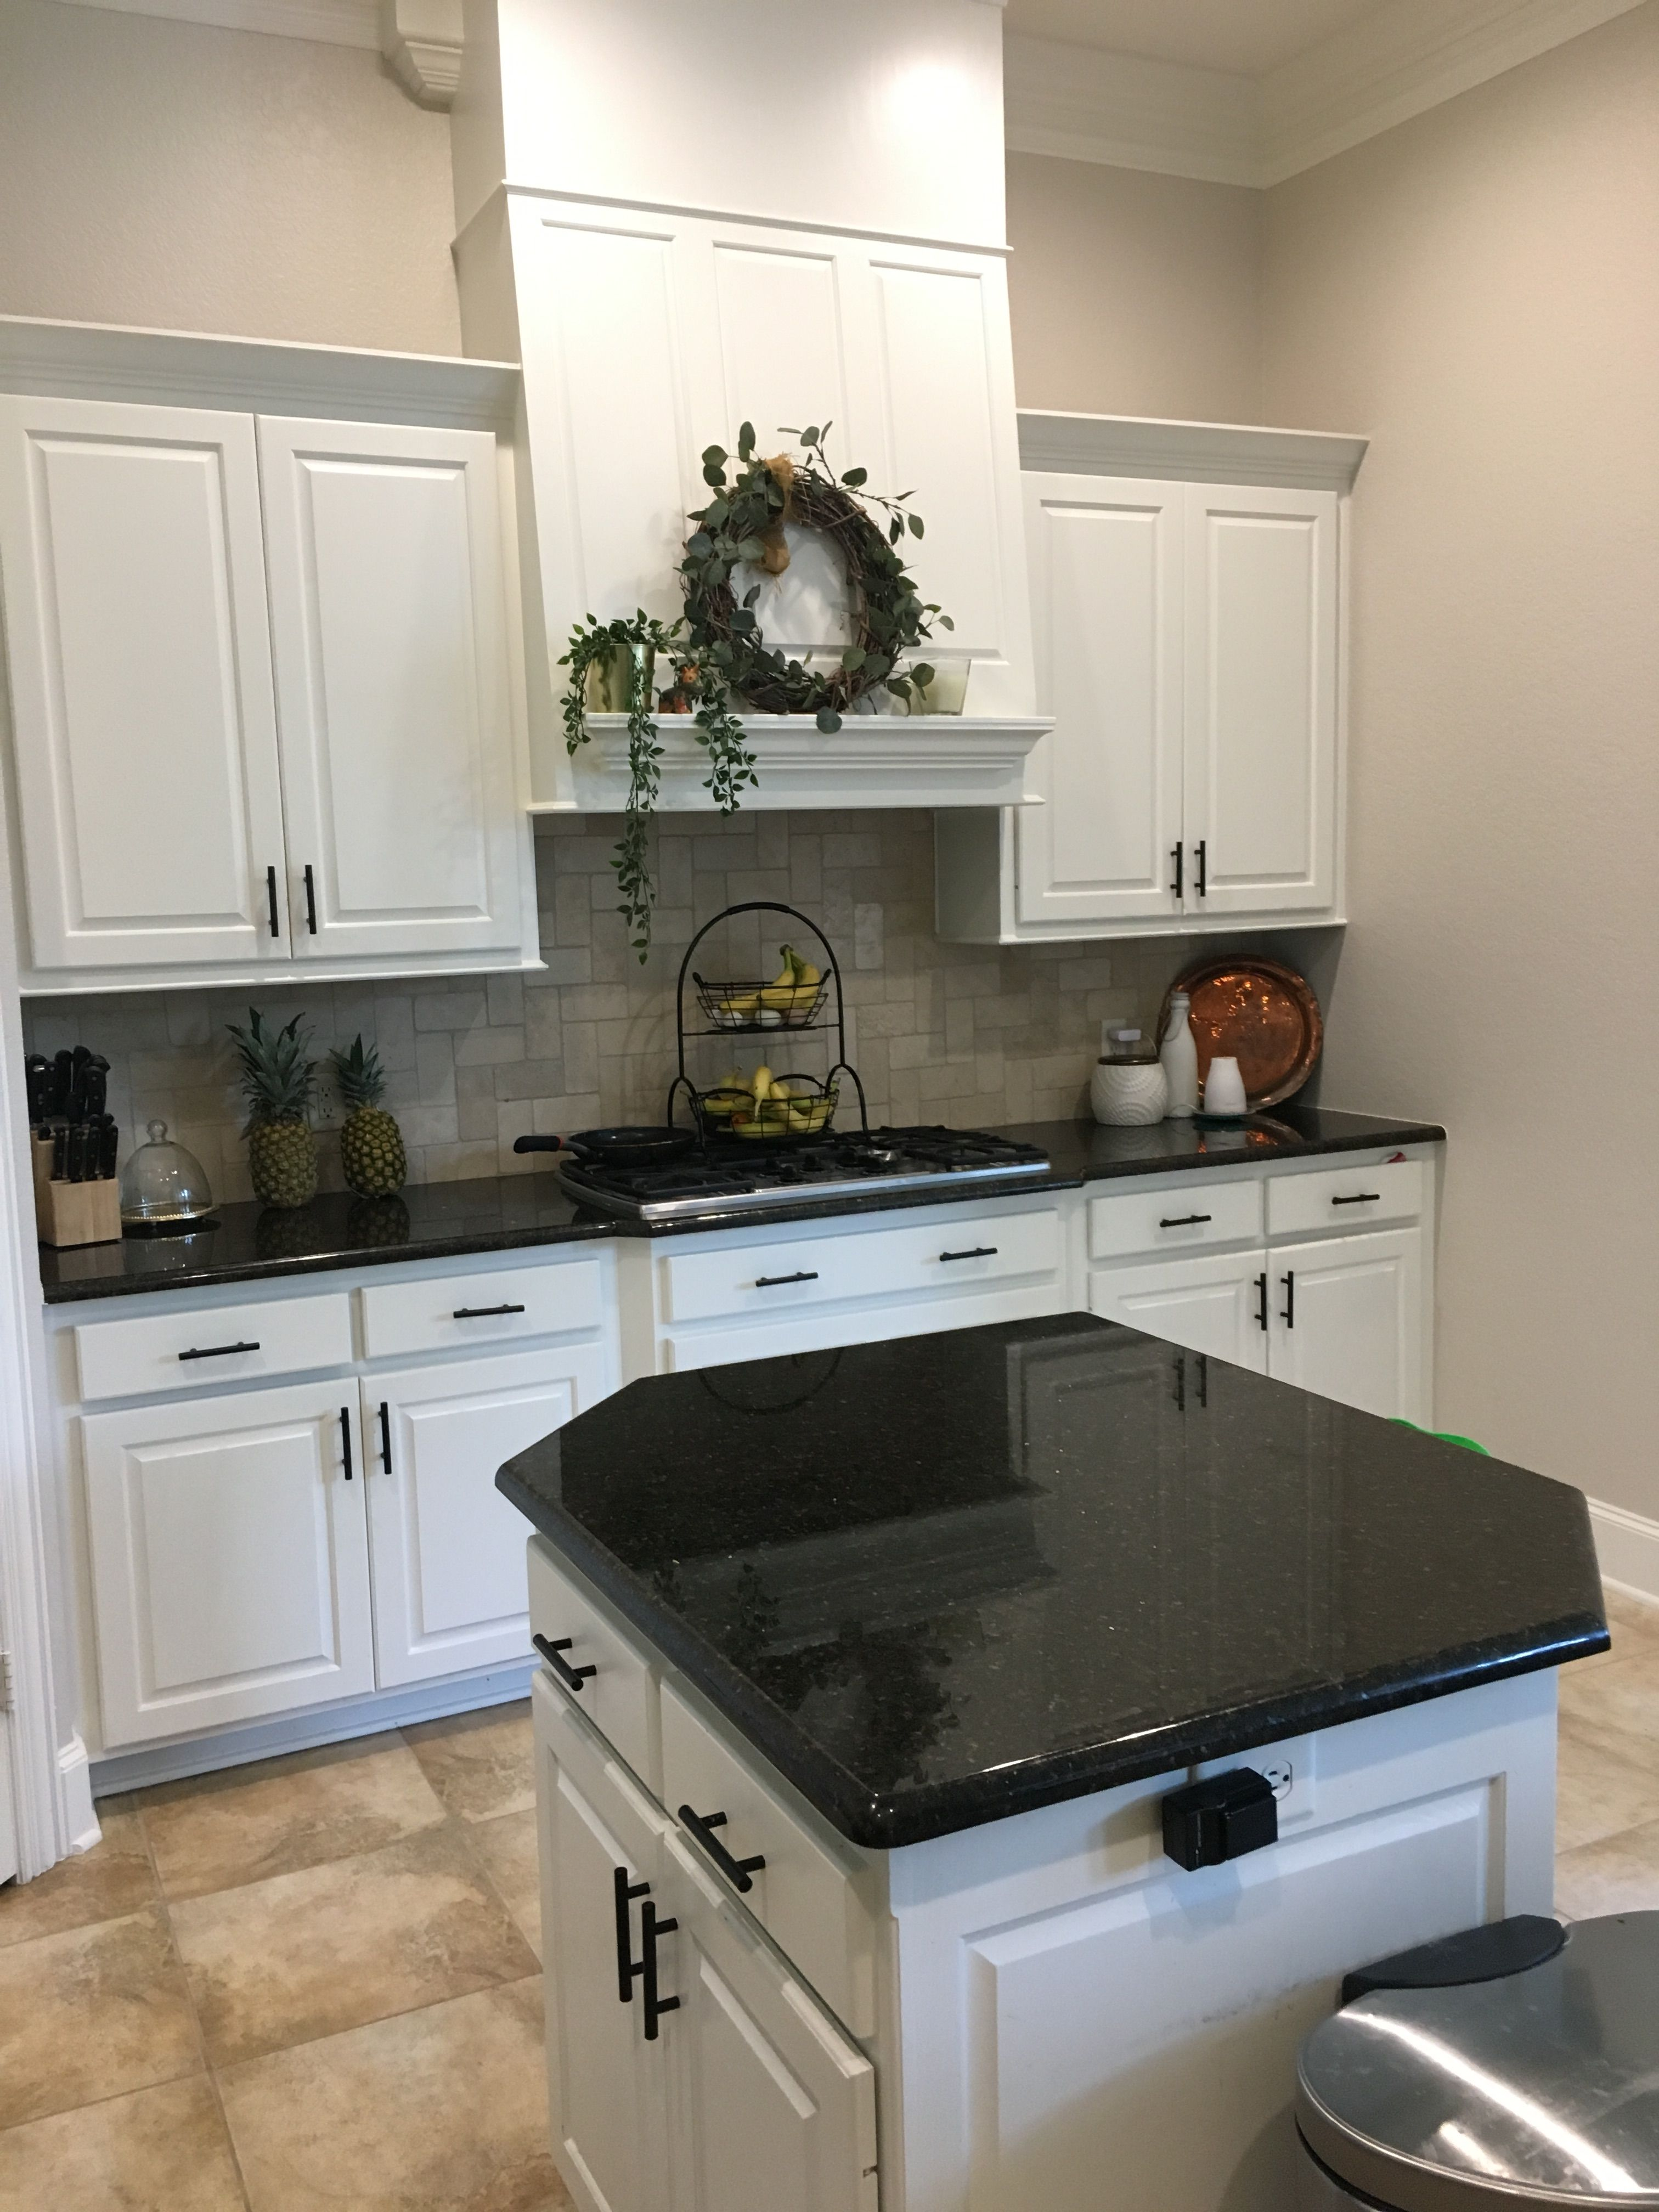 pin by sharon smith on kitchen corner cabinets with images corner kitchen cabinet kitchen on kitchen cabinets corner id=86339